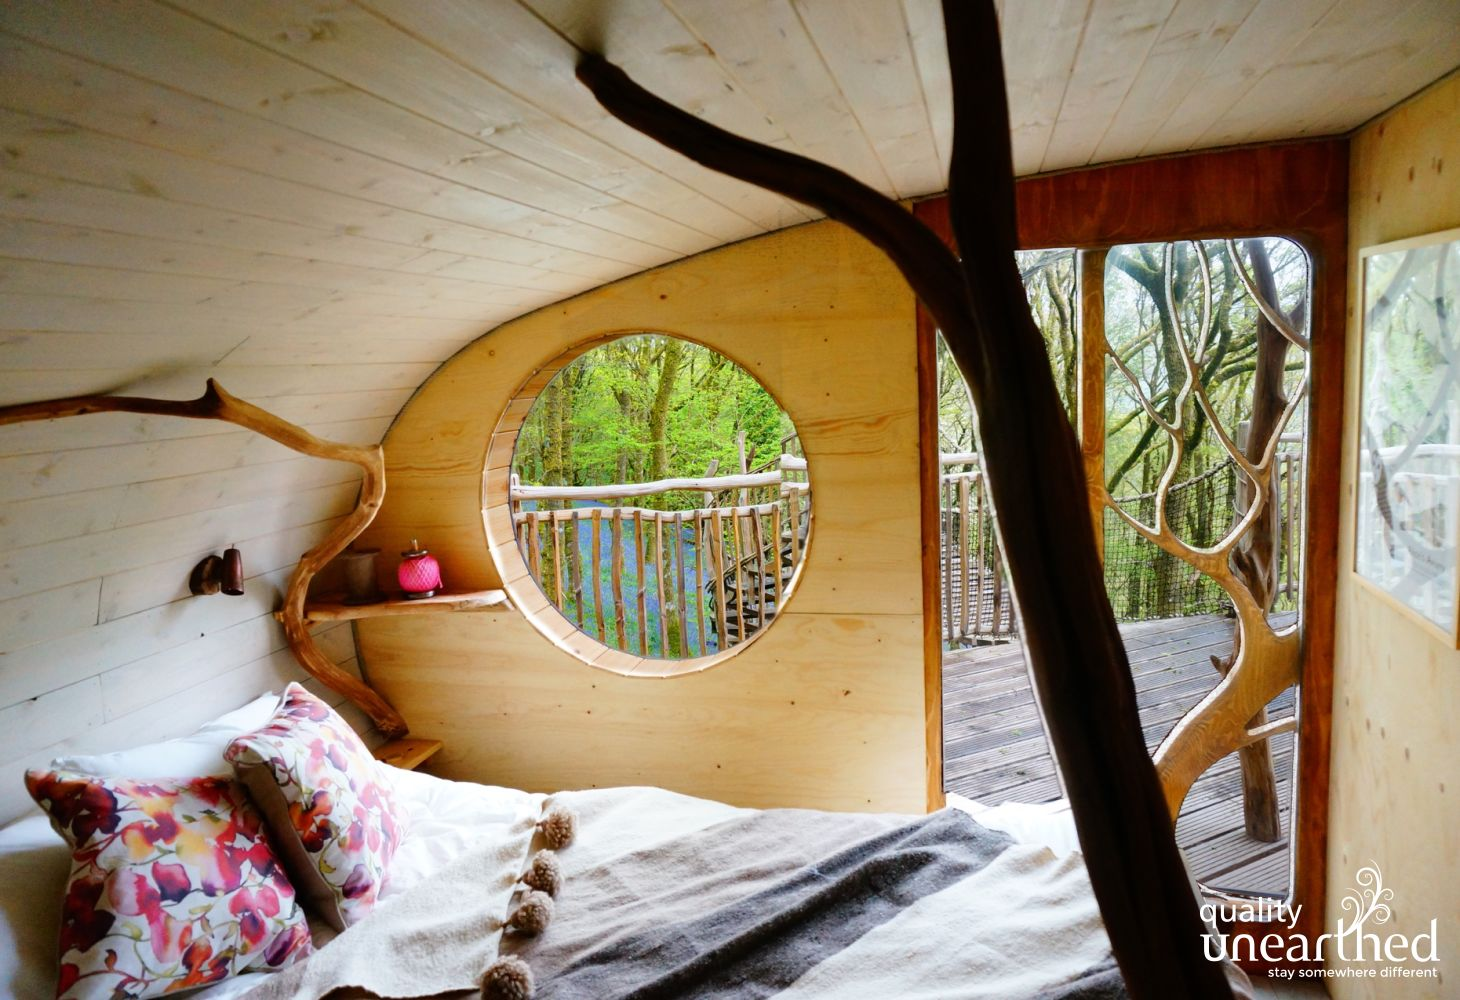 Sight of bluebells from the handcrafted porthole treehouse window of this double bedroom which is clad in pine with lovely linens